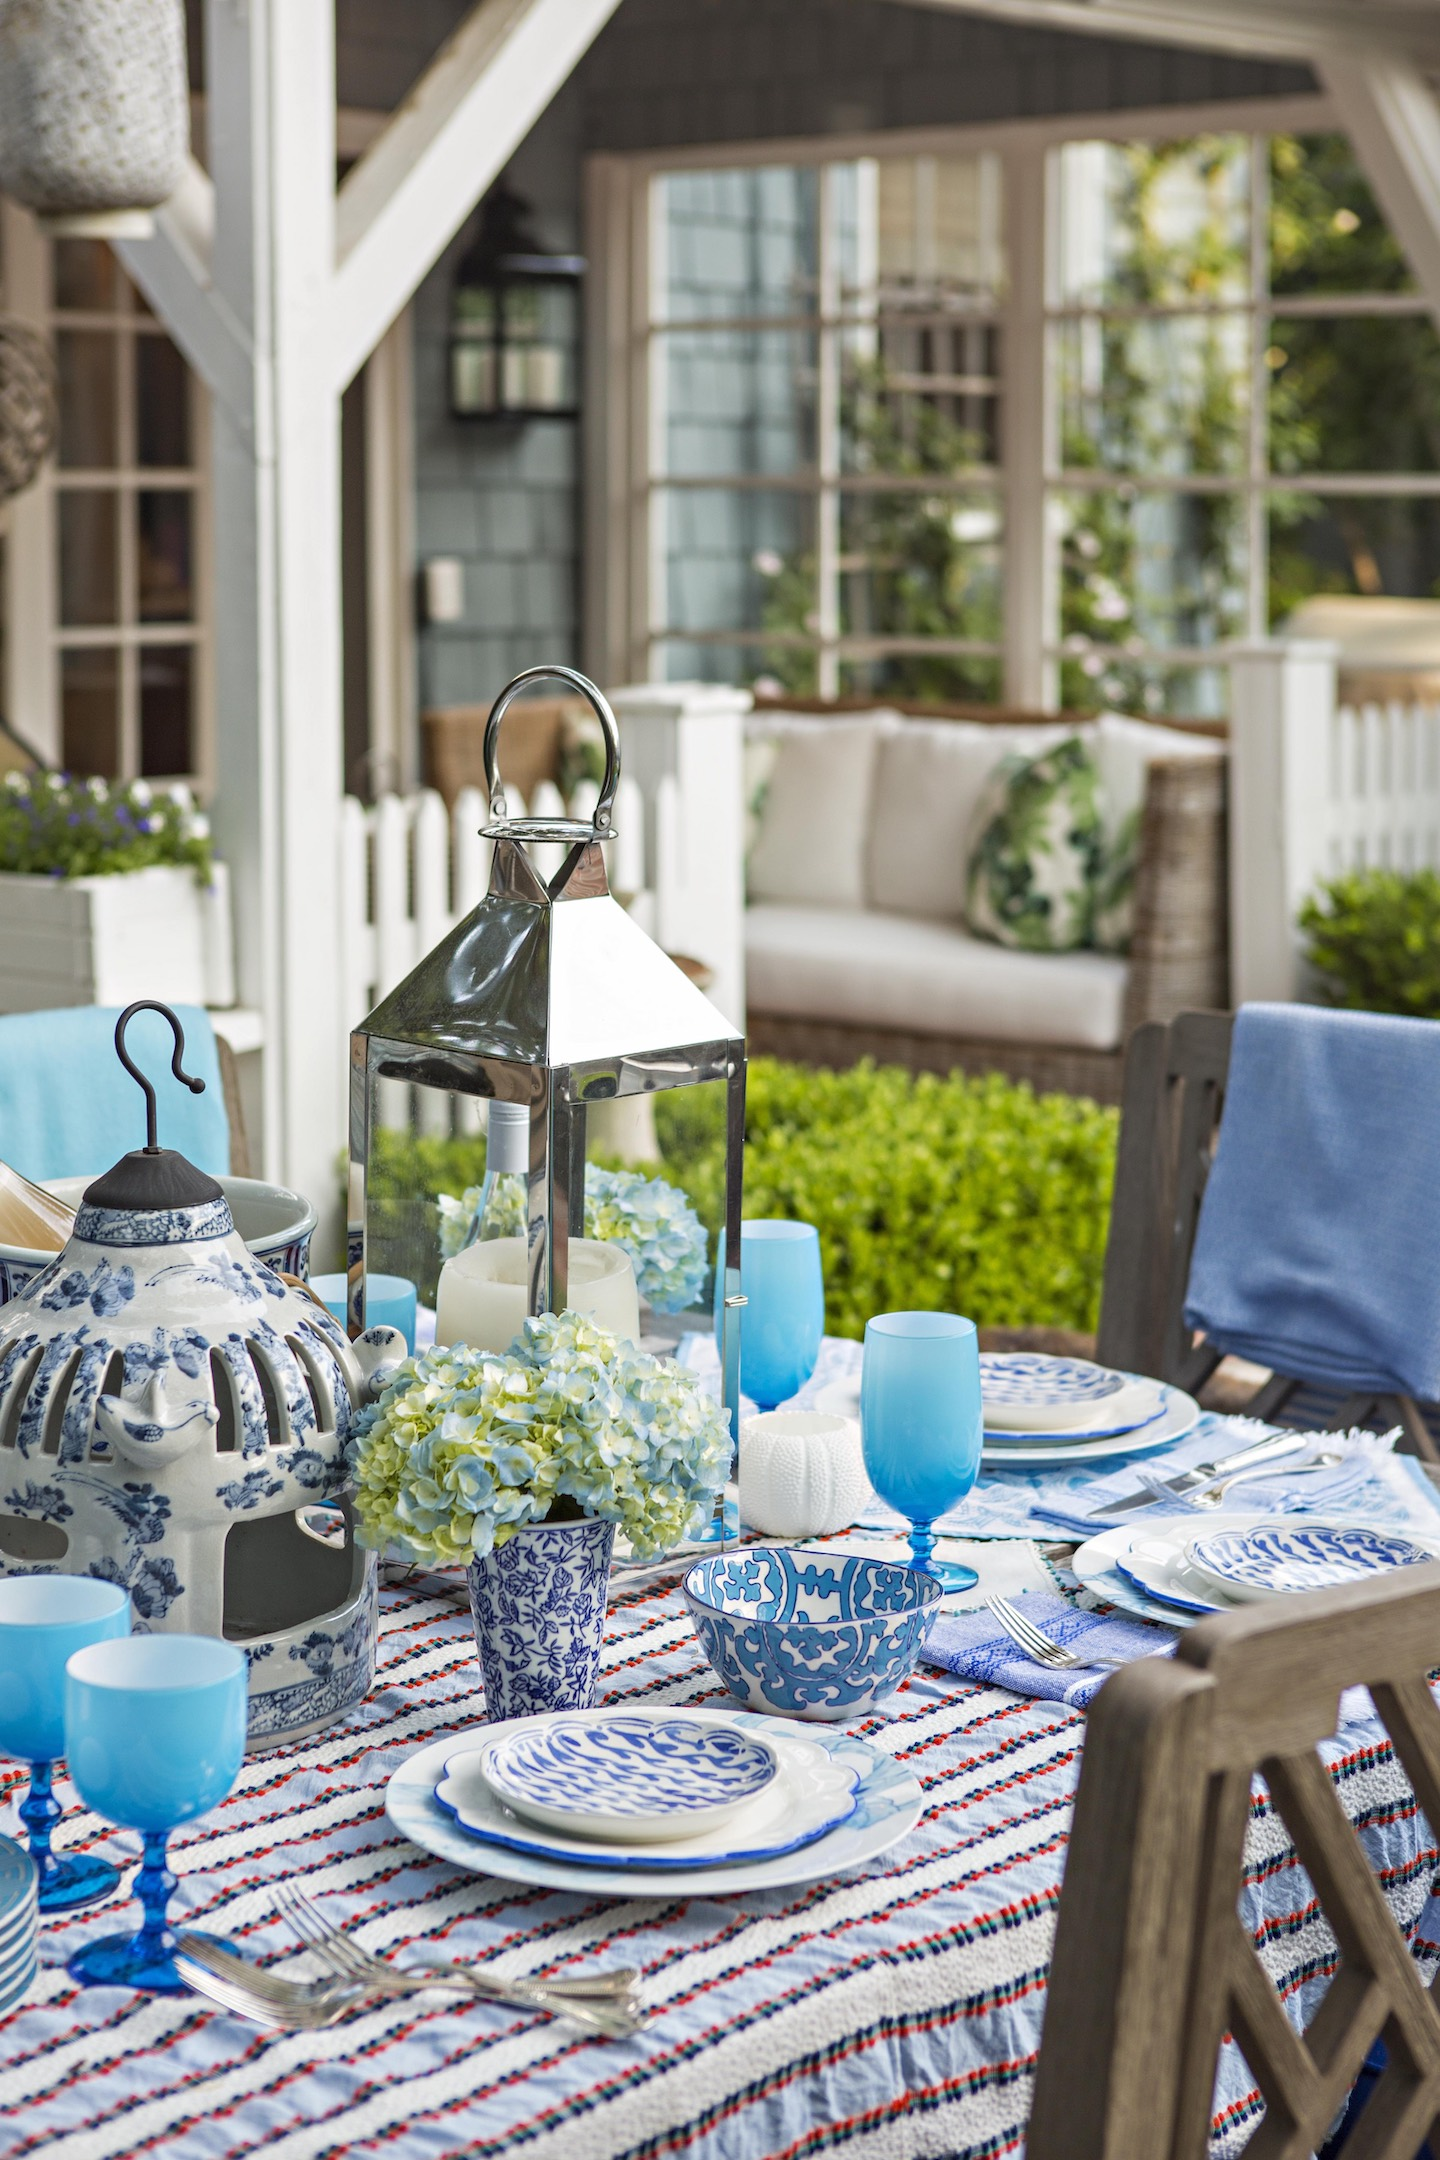 outdoor table set with striped tablecloth and blue glassware